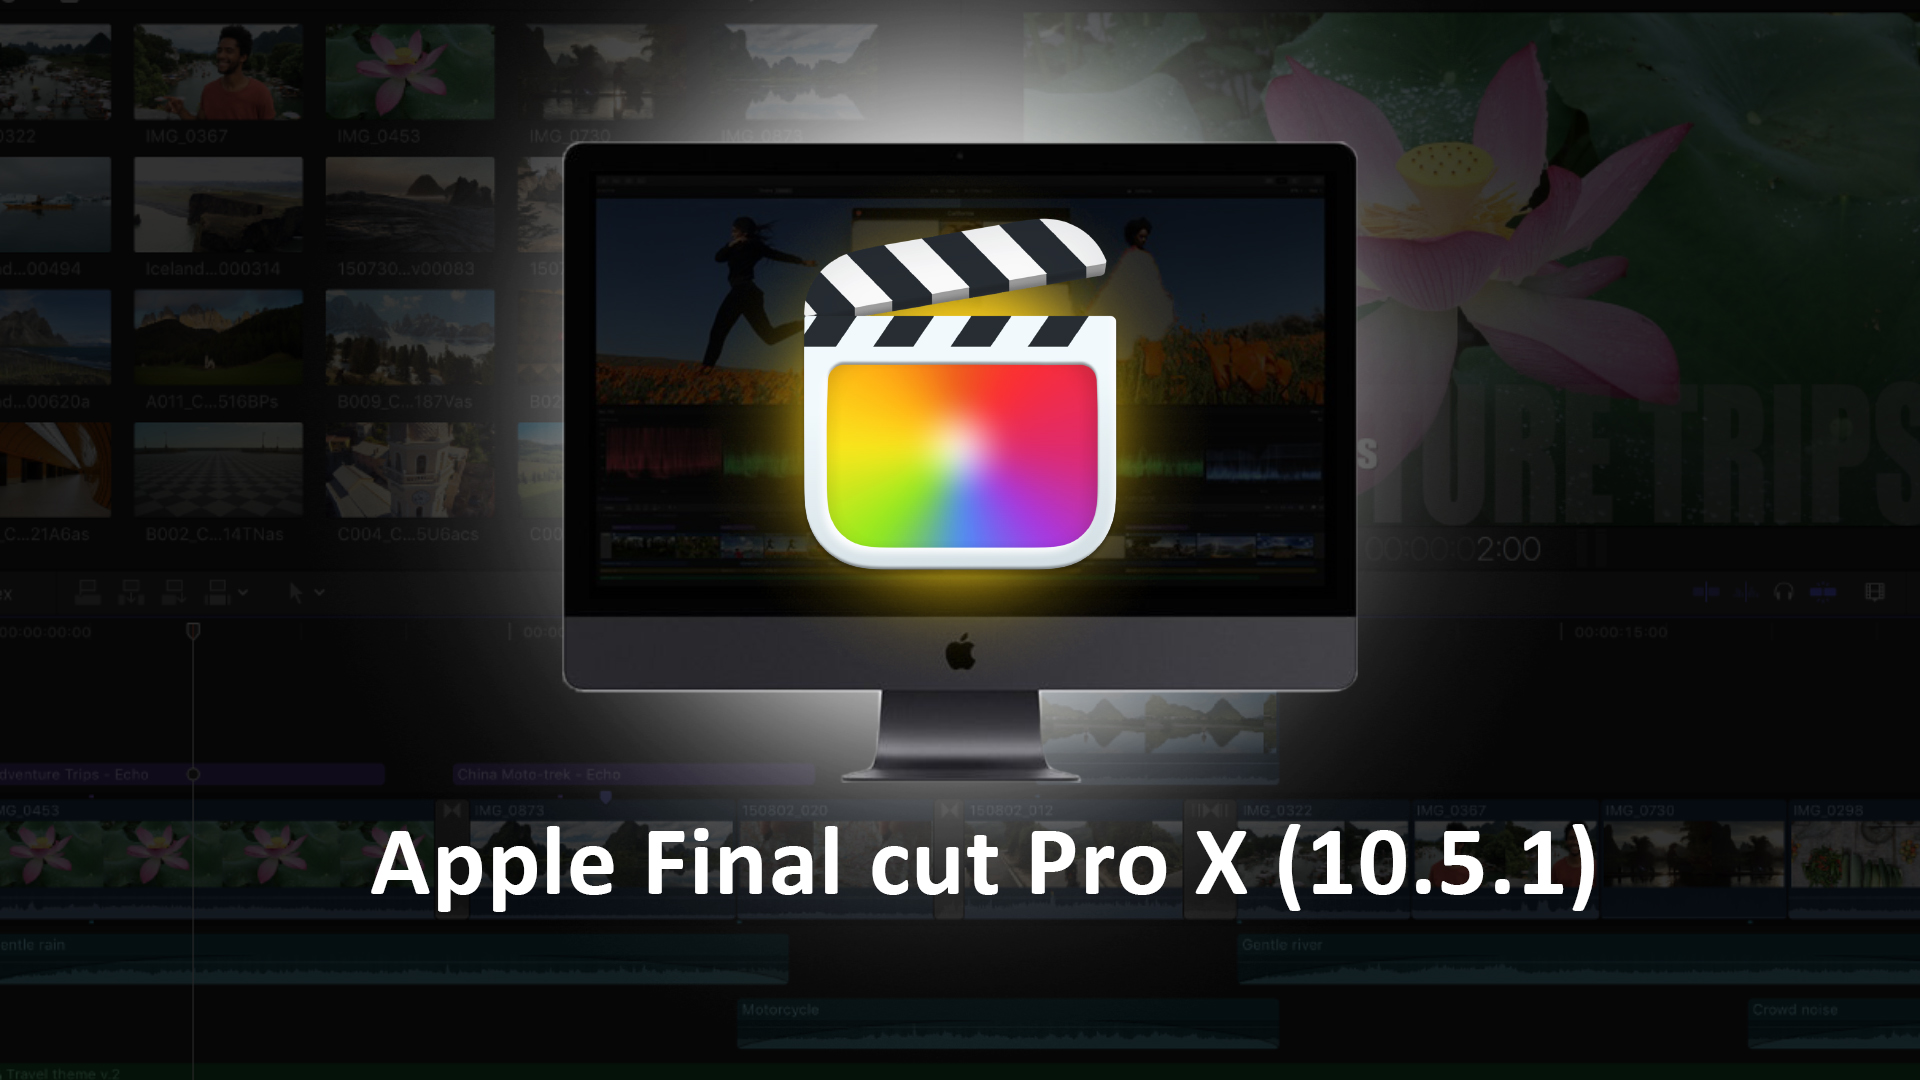 Apple Final Cut Pro X (10.5.1)